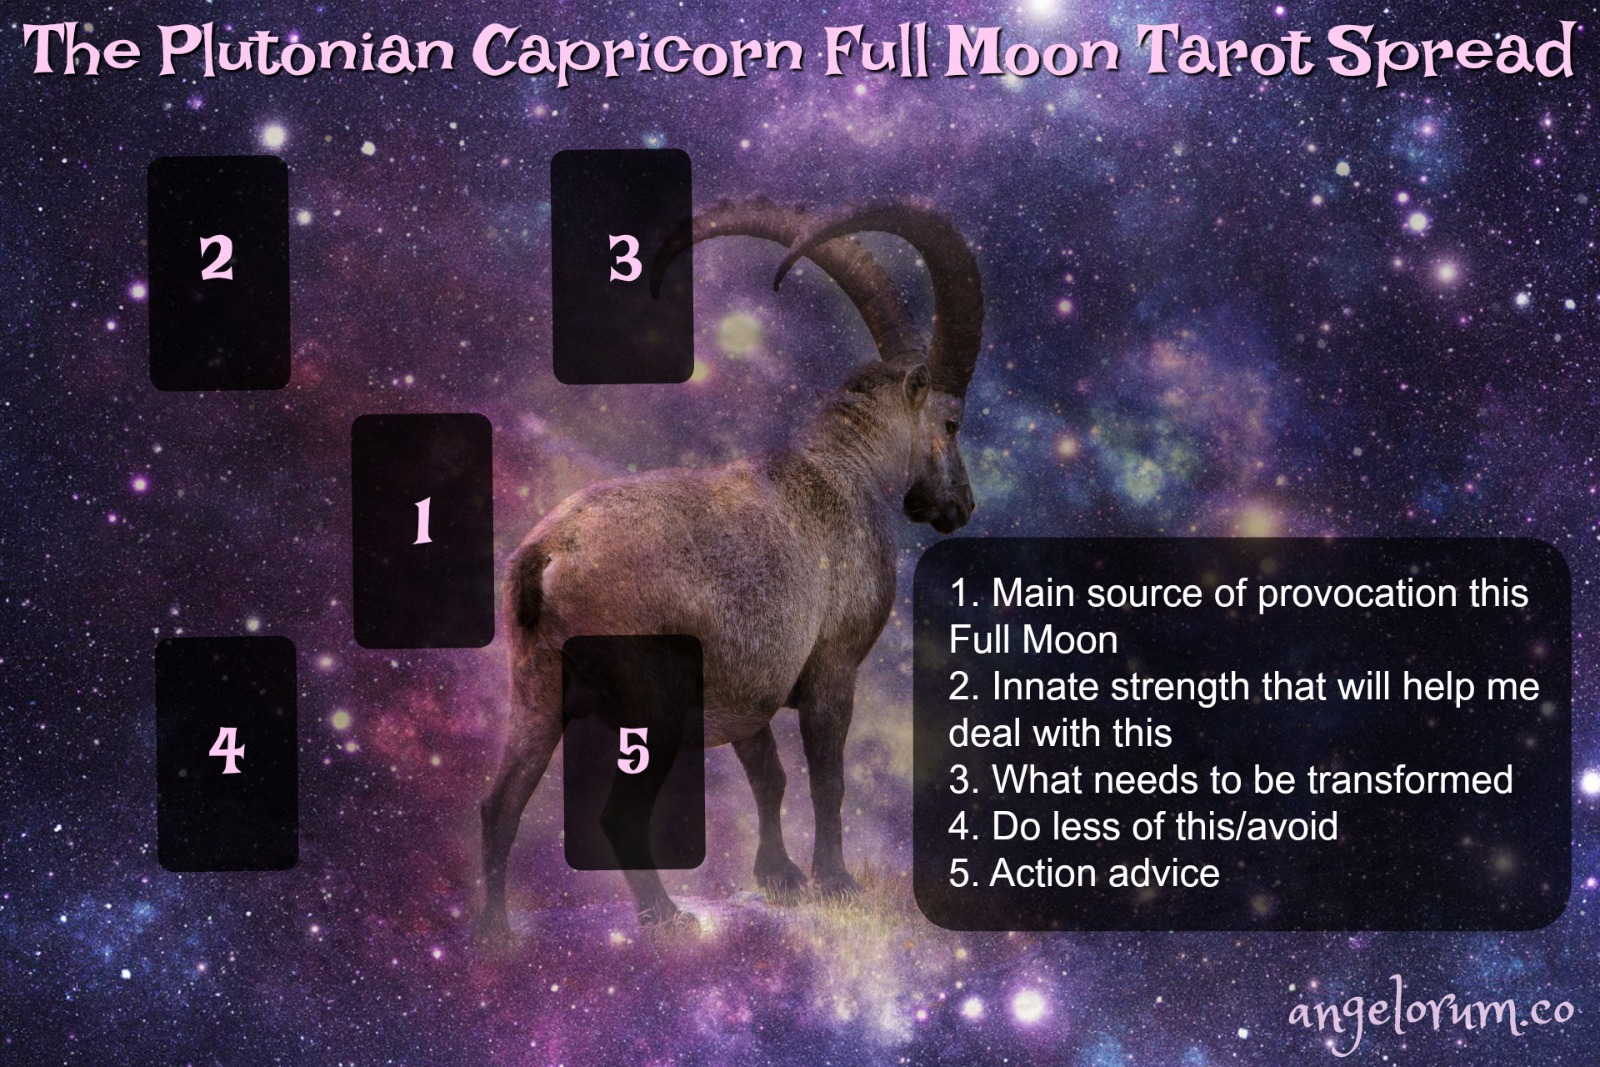 The Plutonian Full Moon Tarot Spread